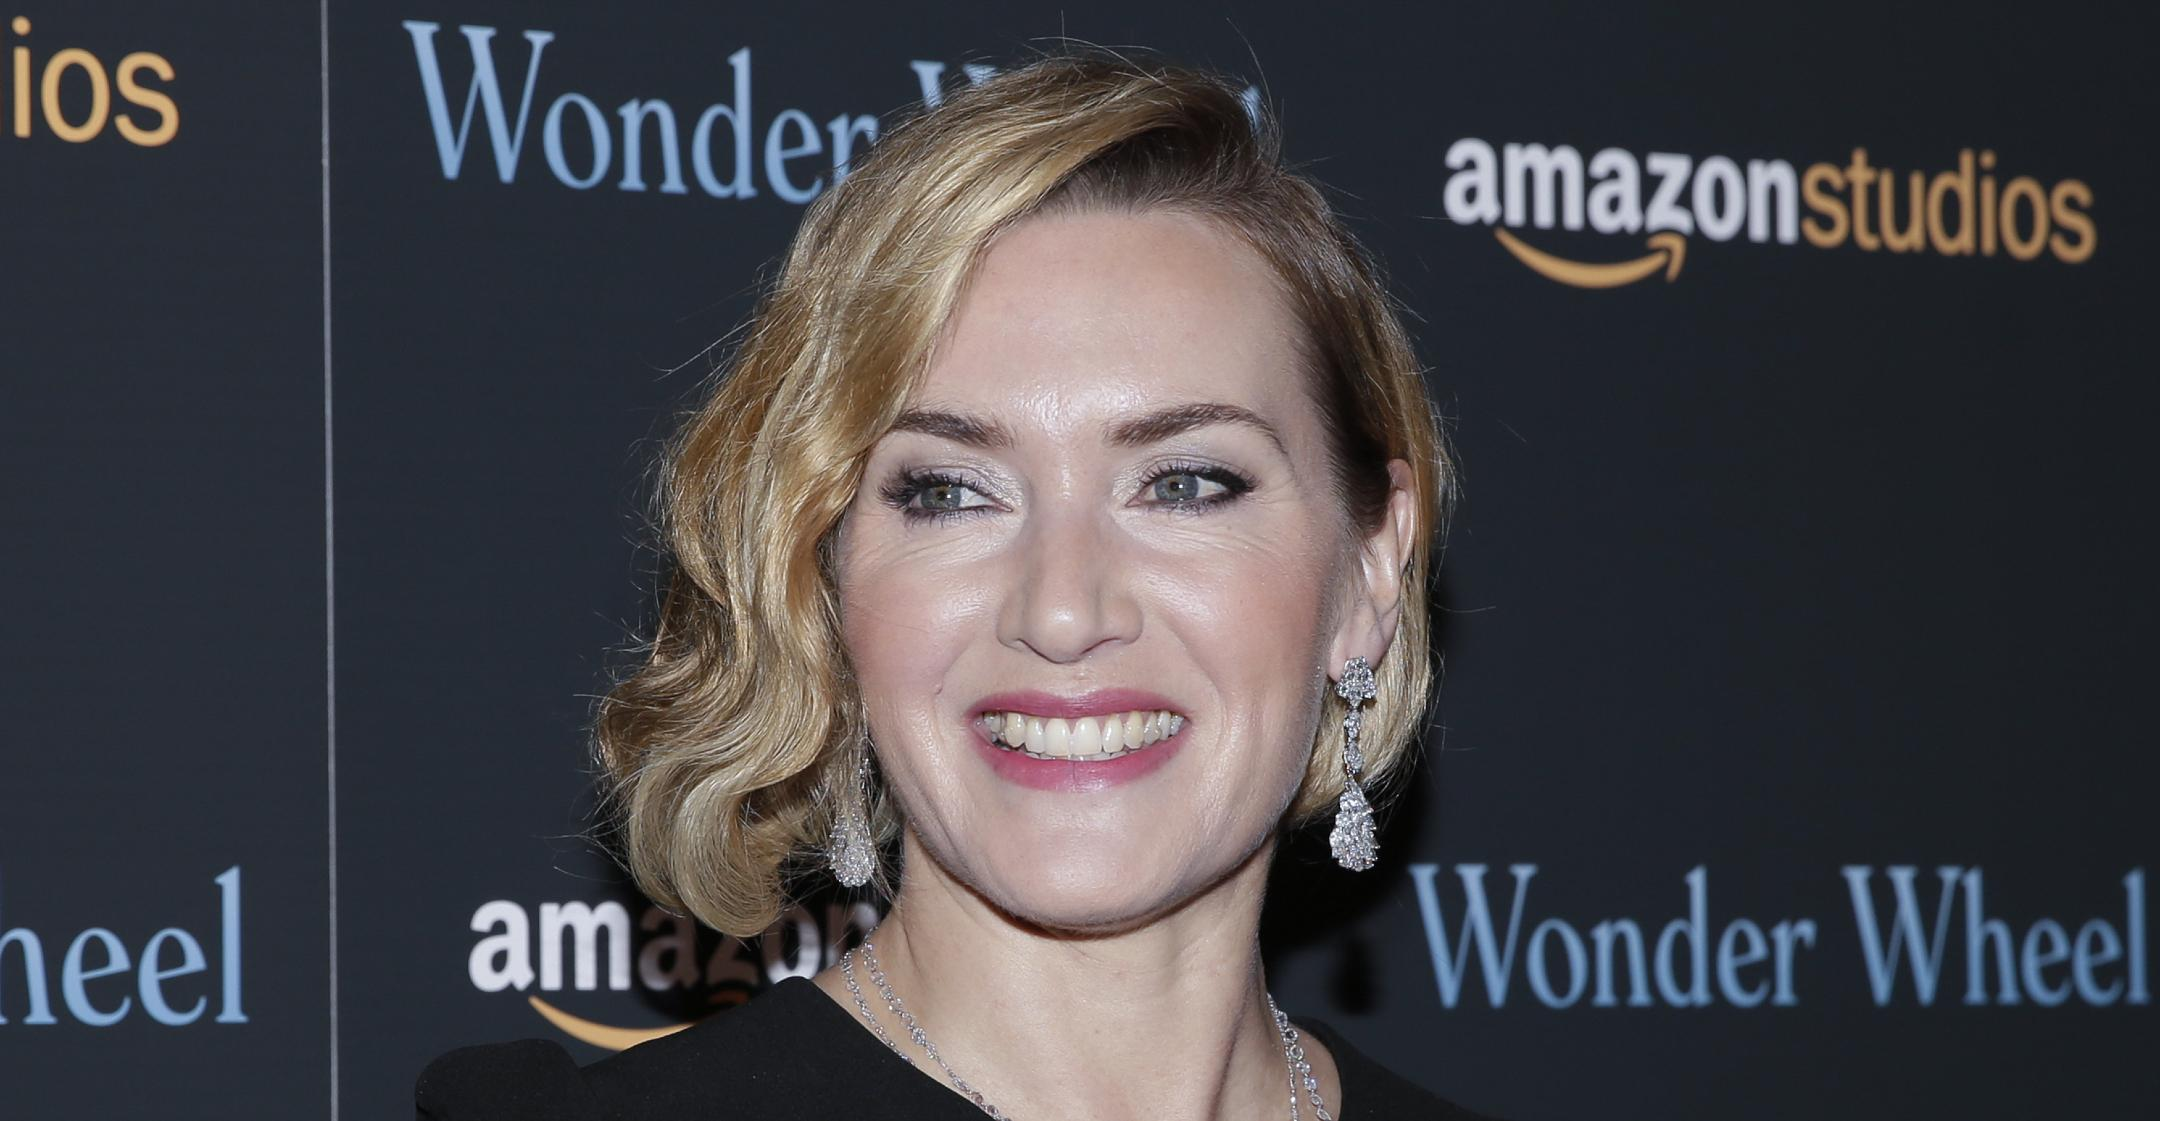 kate winslet refuses to let face body be edited encourages women to accept themselves